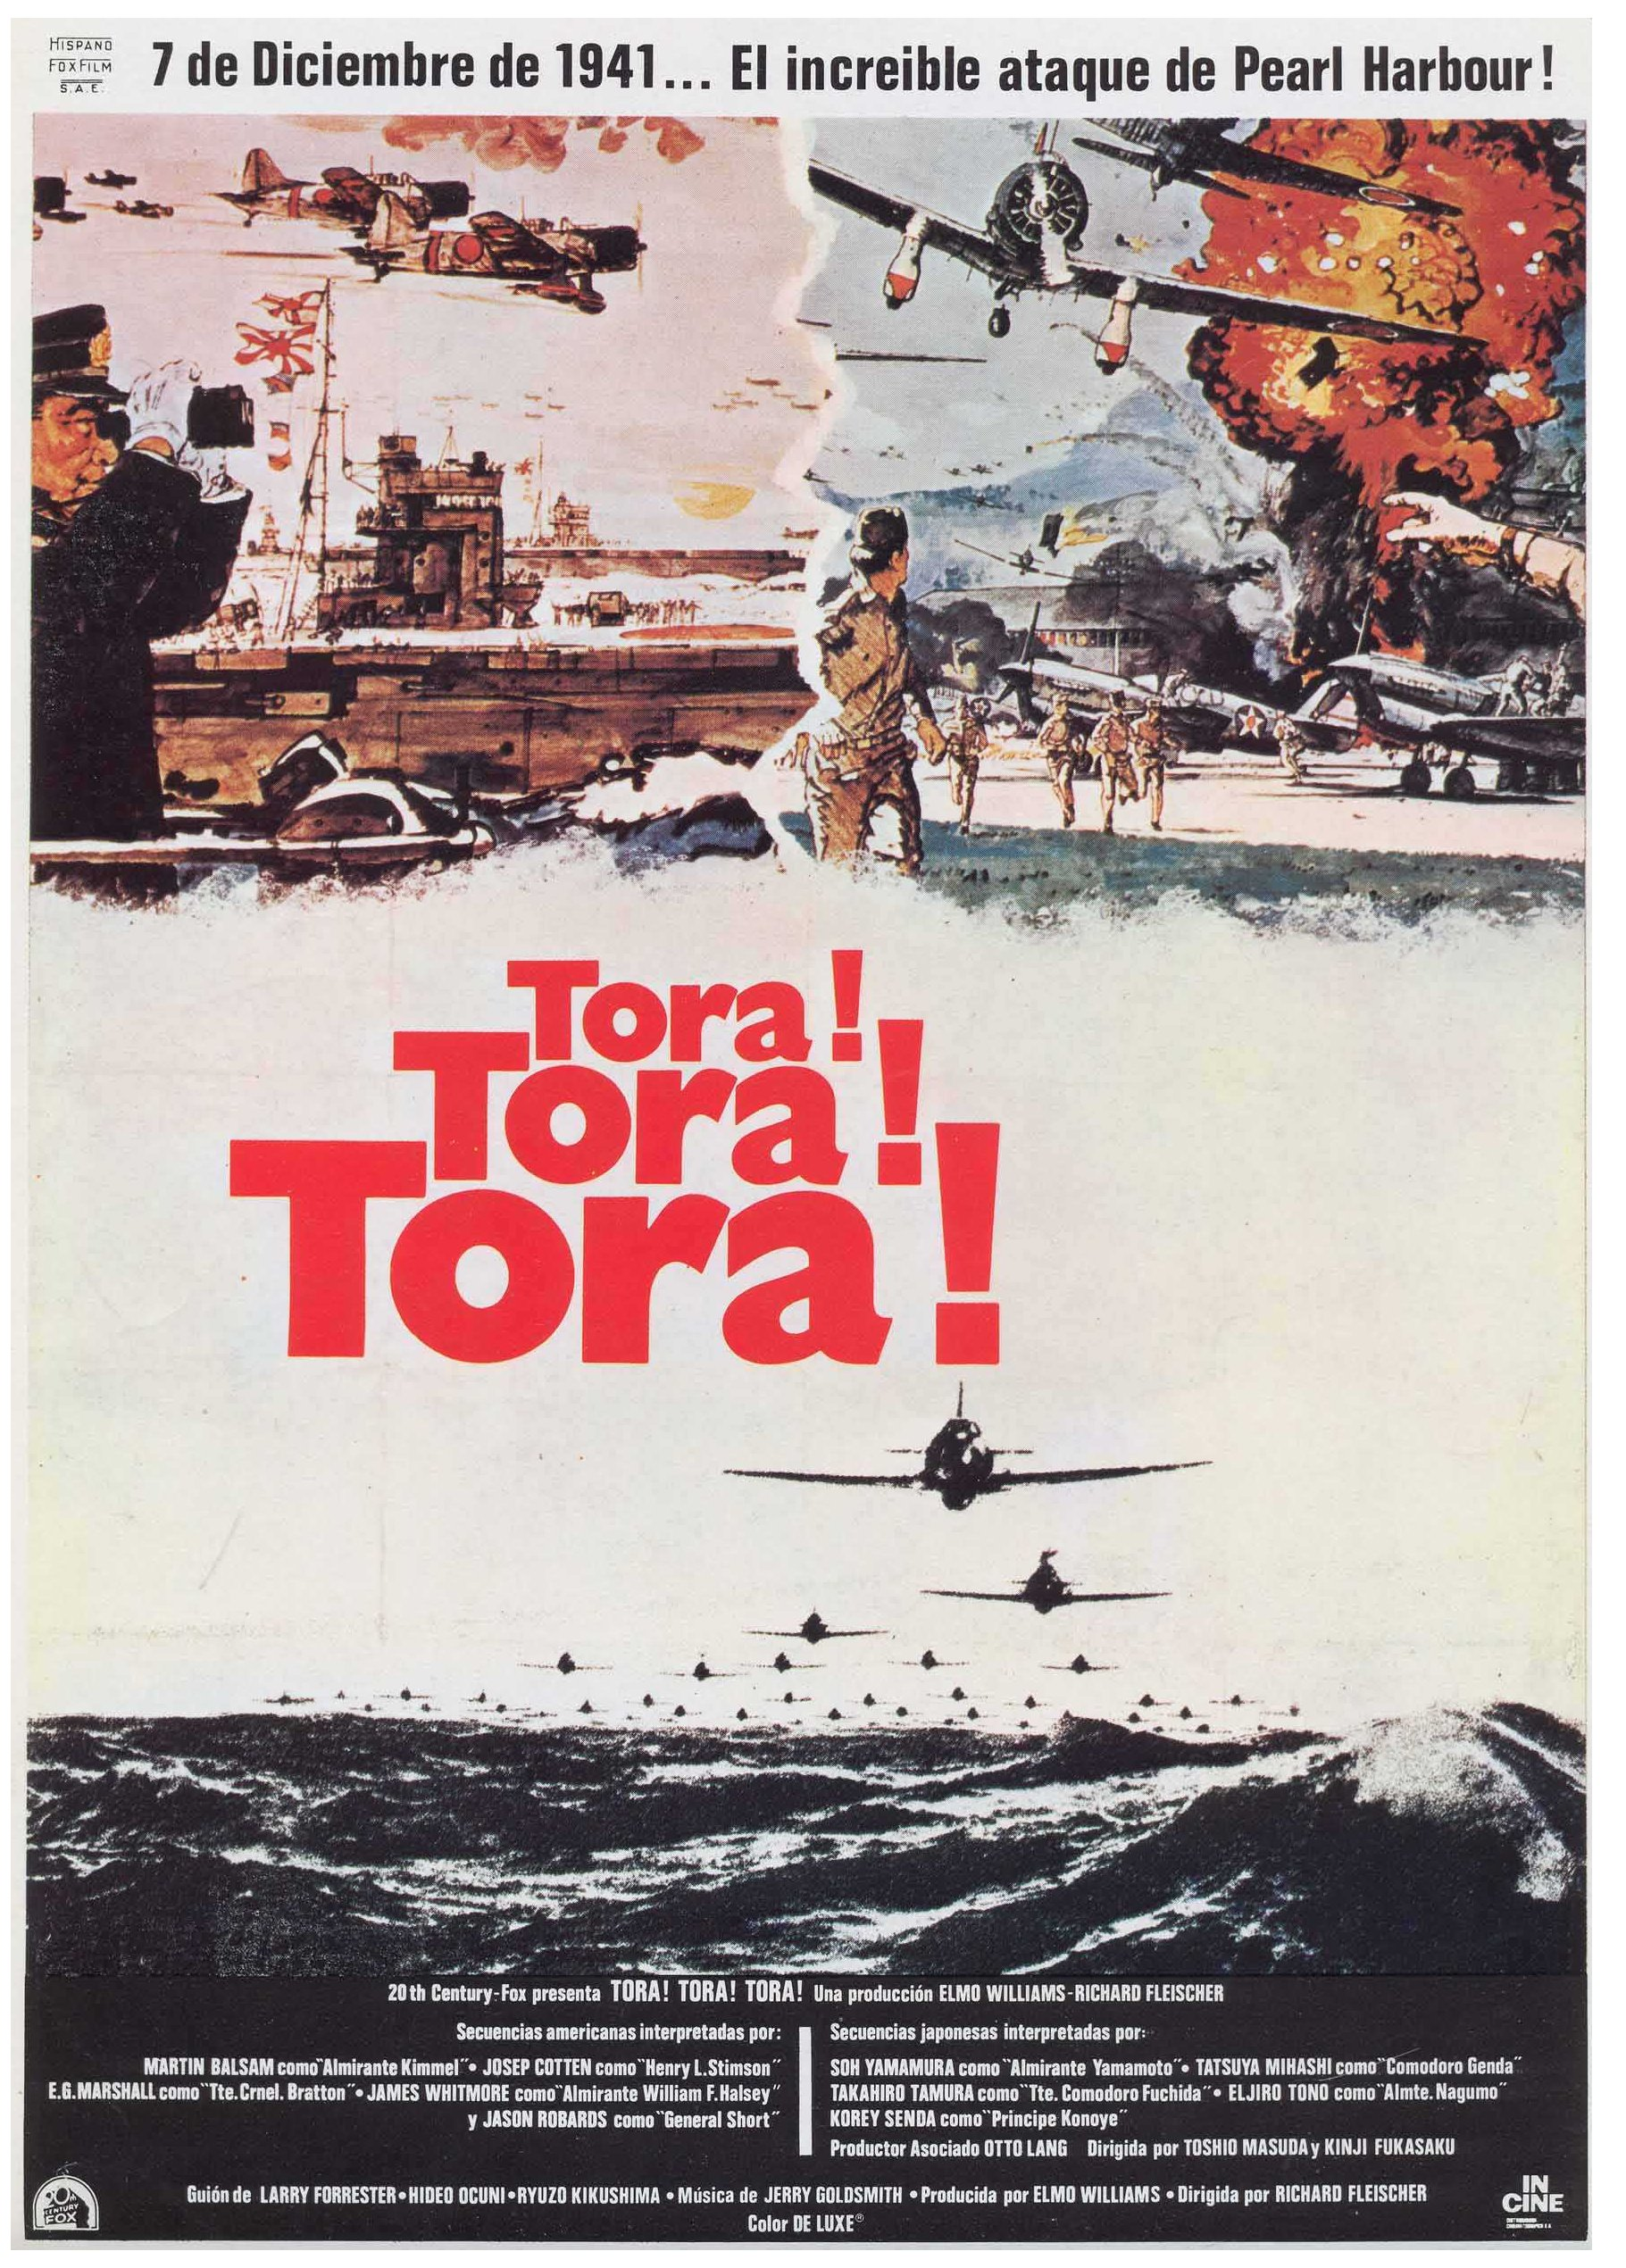 an analysis of the film tora tora tora Yet tora tora tora is still the best the pearl harbor movie of jerry brucheimer is a crap i hope speilberg do a film about the attack which is accurately done and even the battle of midway perhaps.